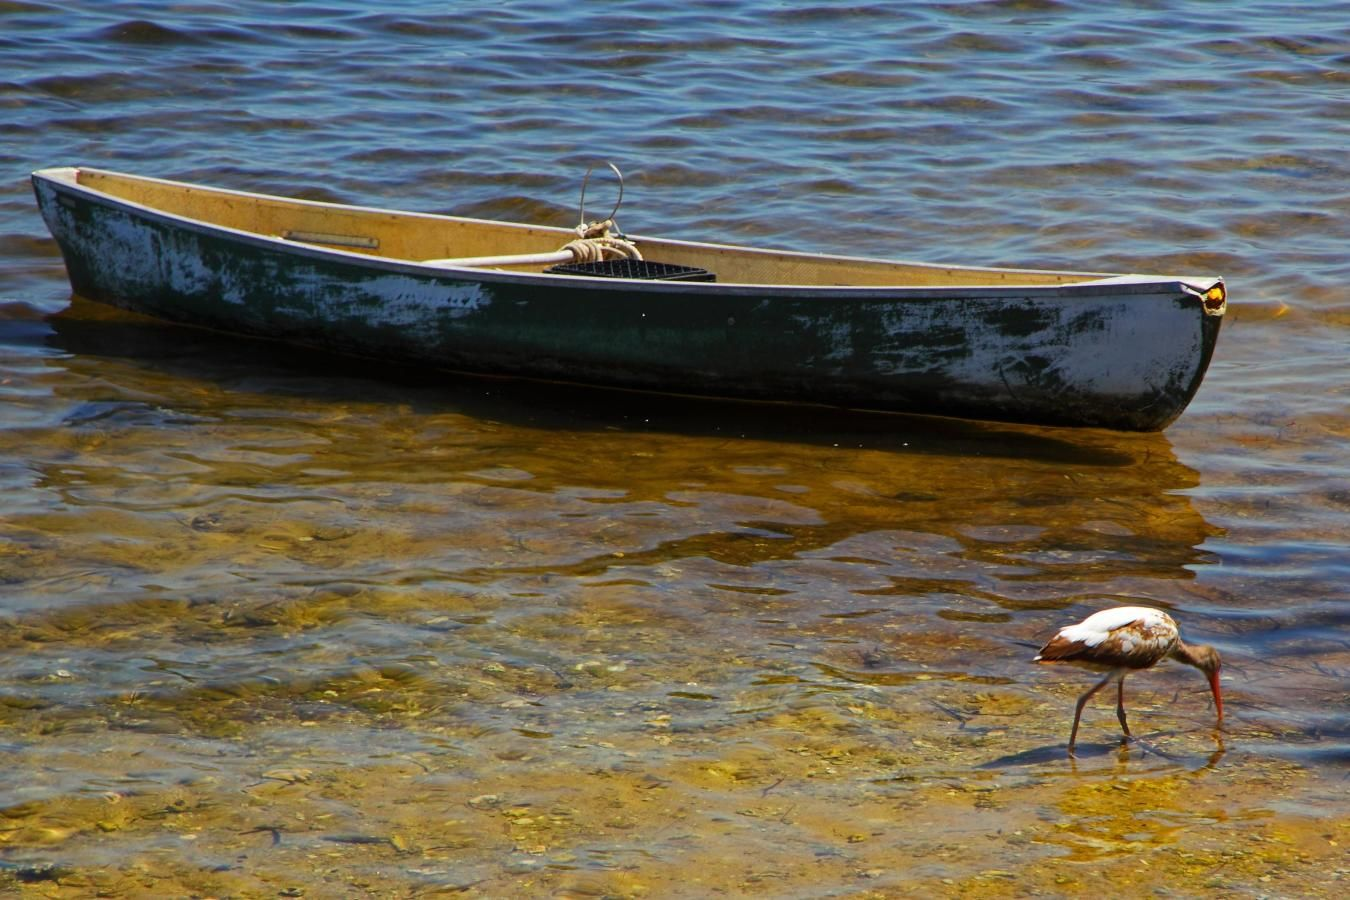 Peacock Park boat and bird